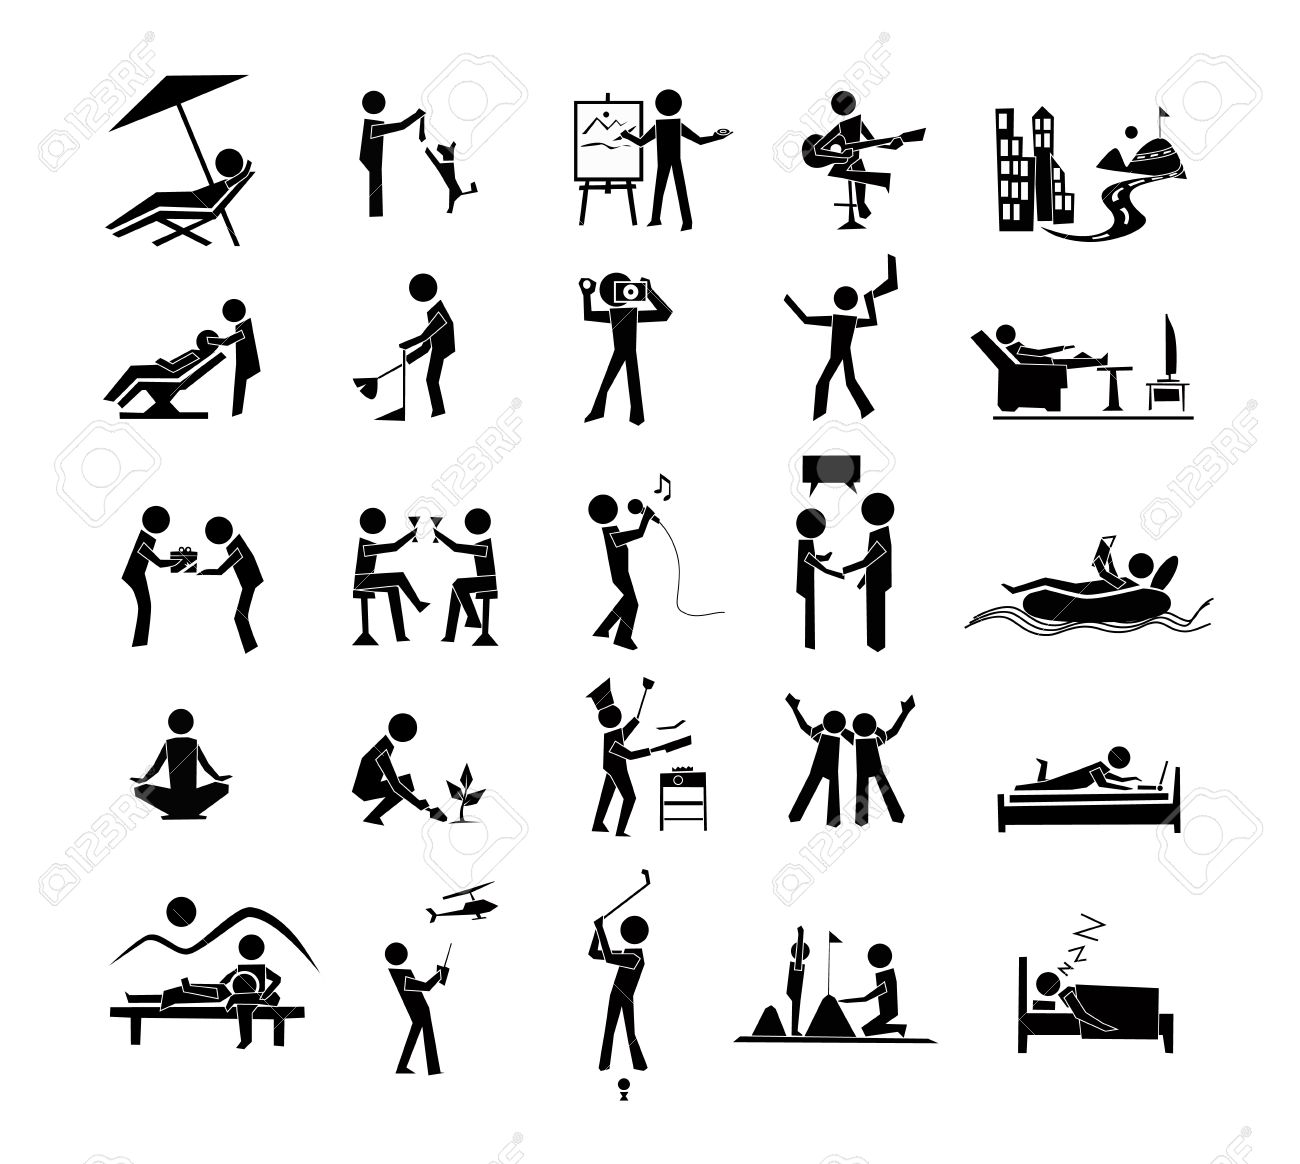 icon activities of leisure,rest,relax, royalty free cliparts